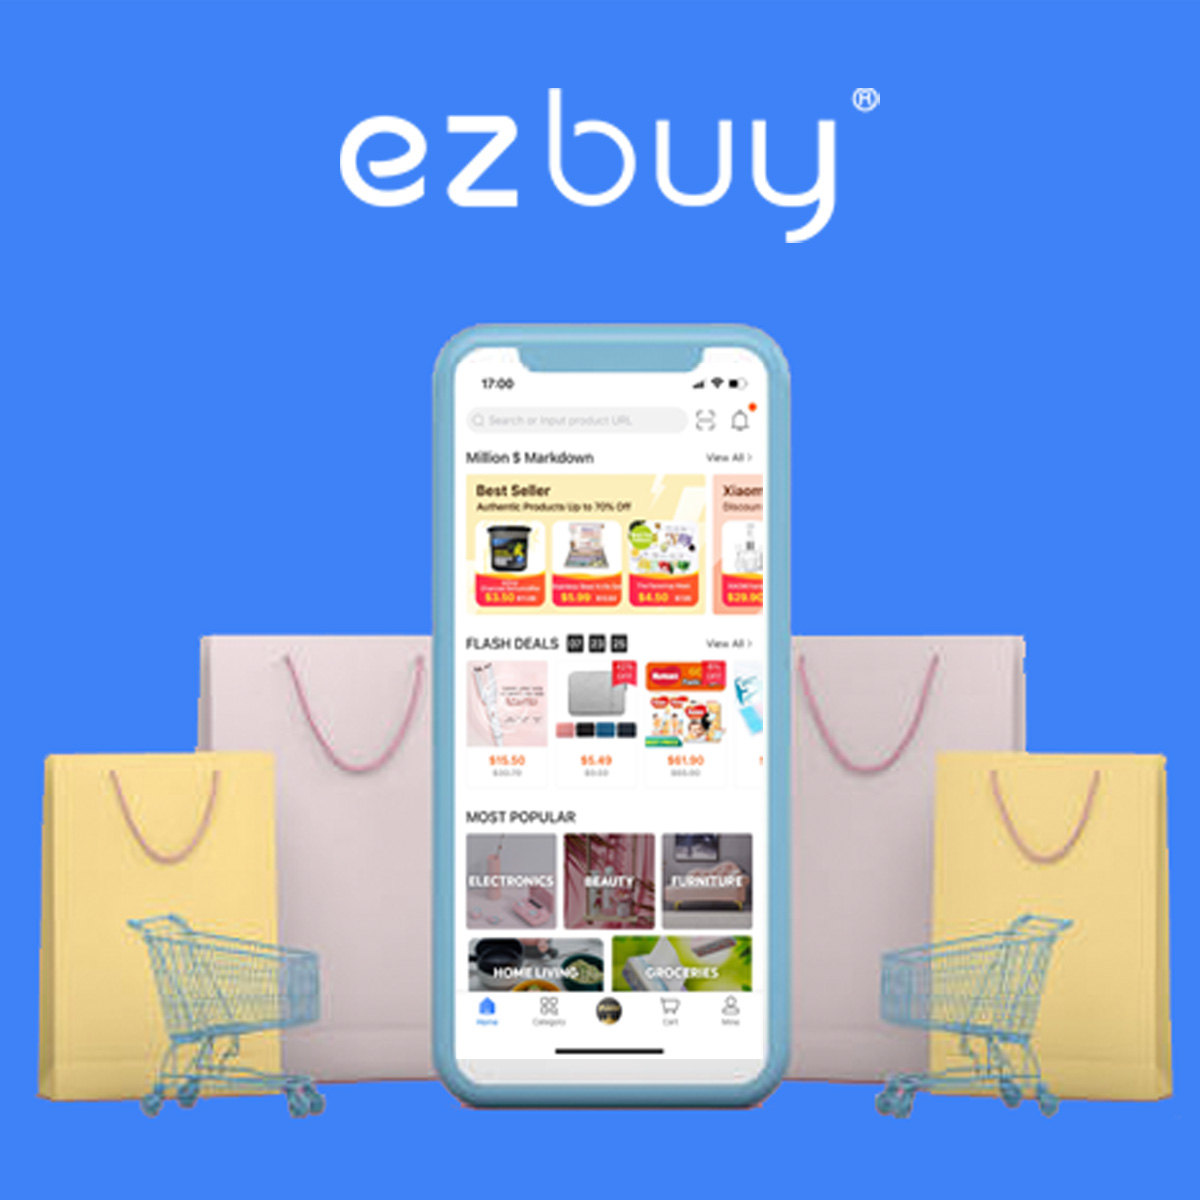 ezbuy - Up To $10 Off Purchases